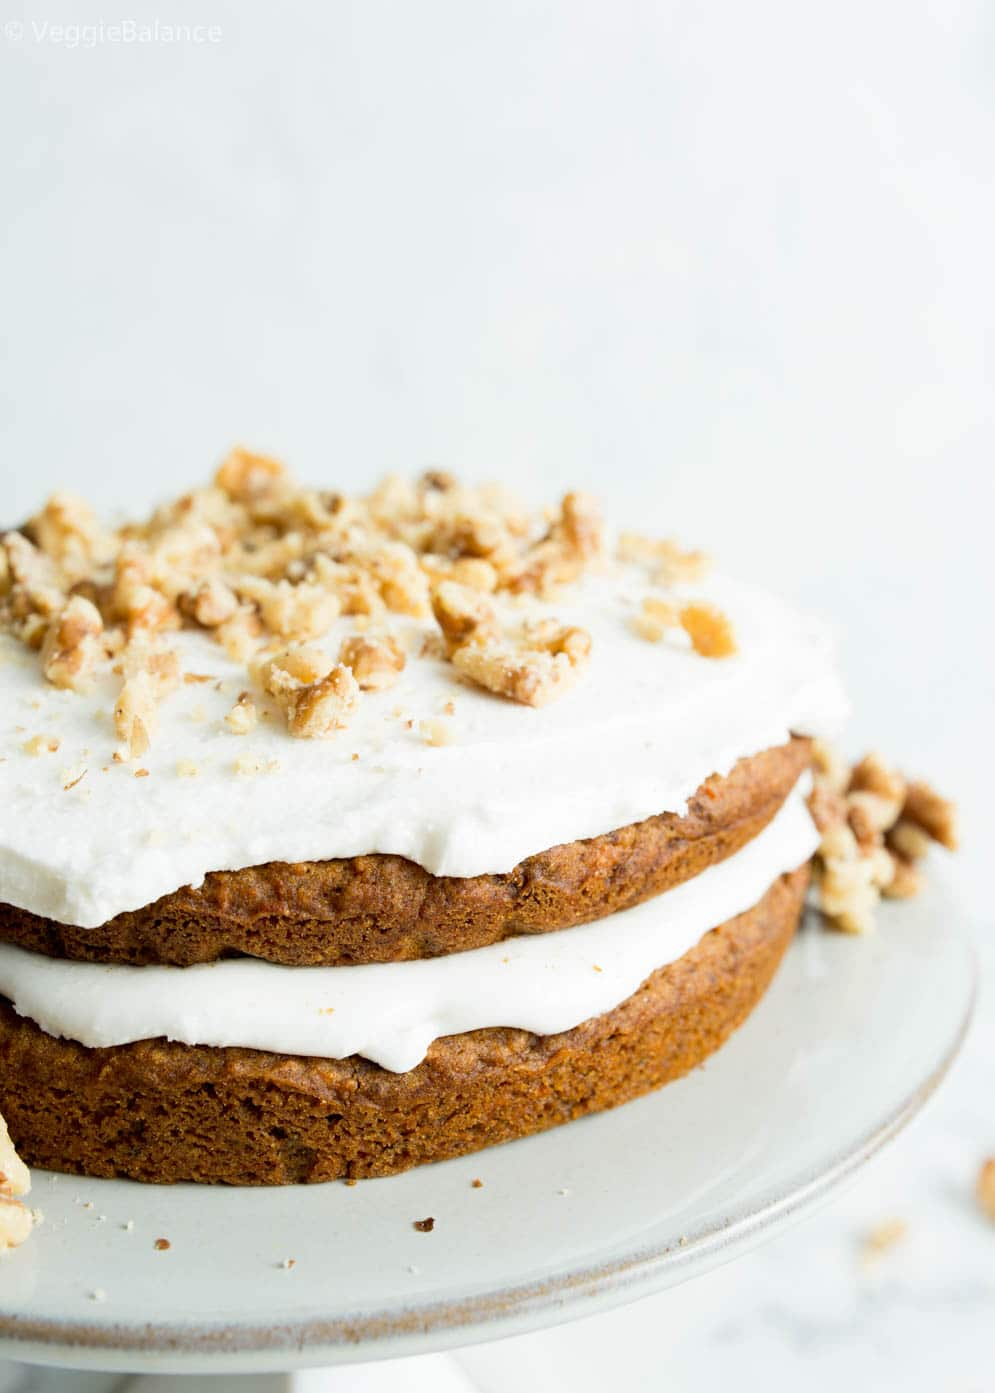 Vegan and Gluten-Free Carrot Cake on a cake dish